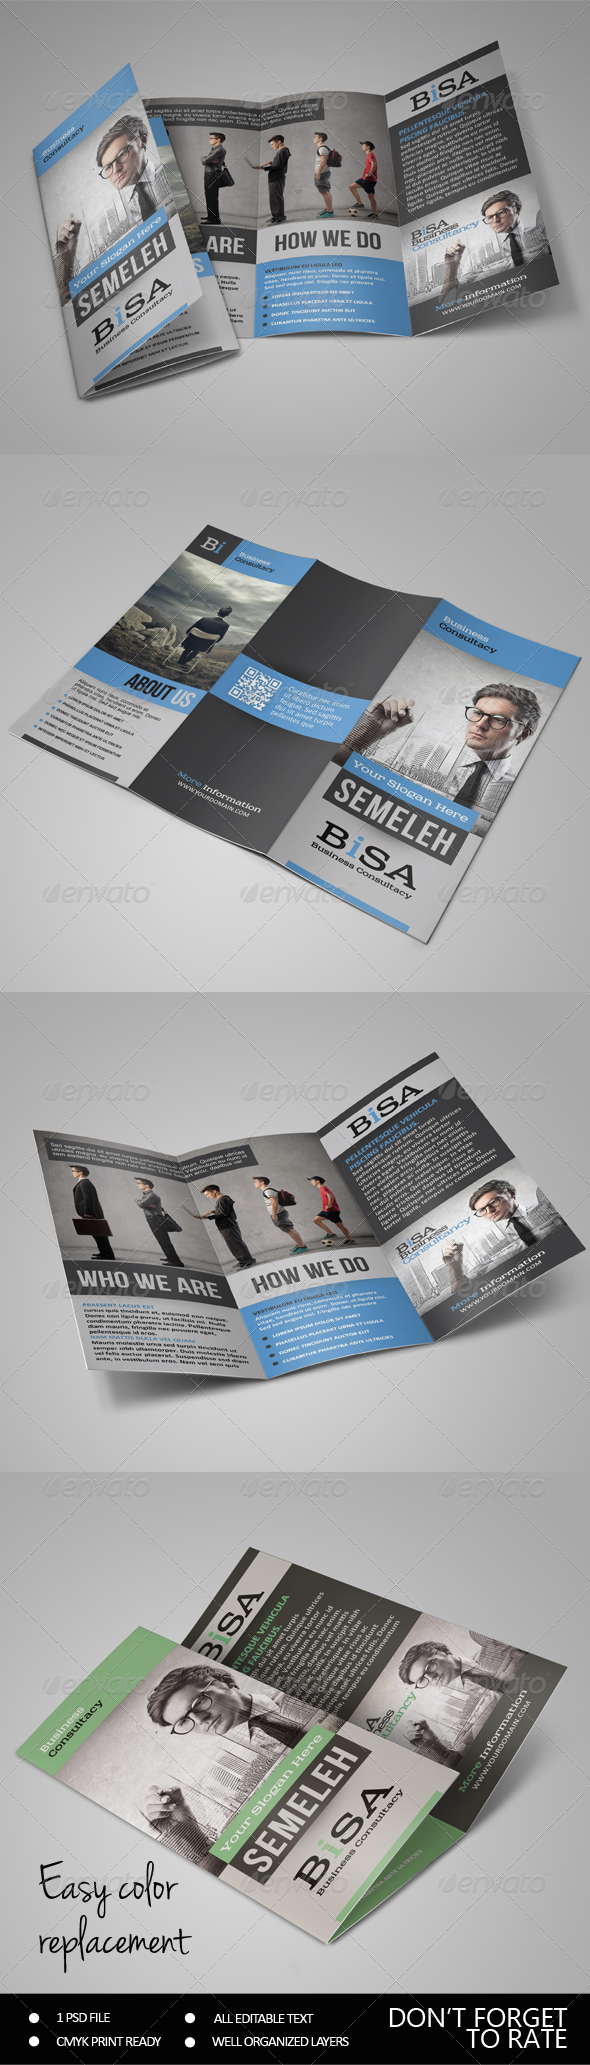 GraphicRiver Standard Business Brochure 7235252